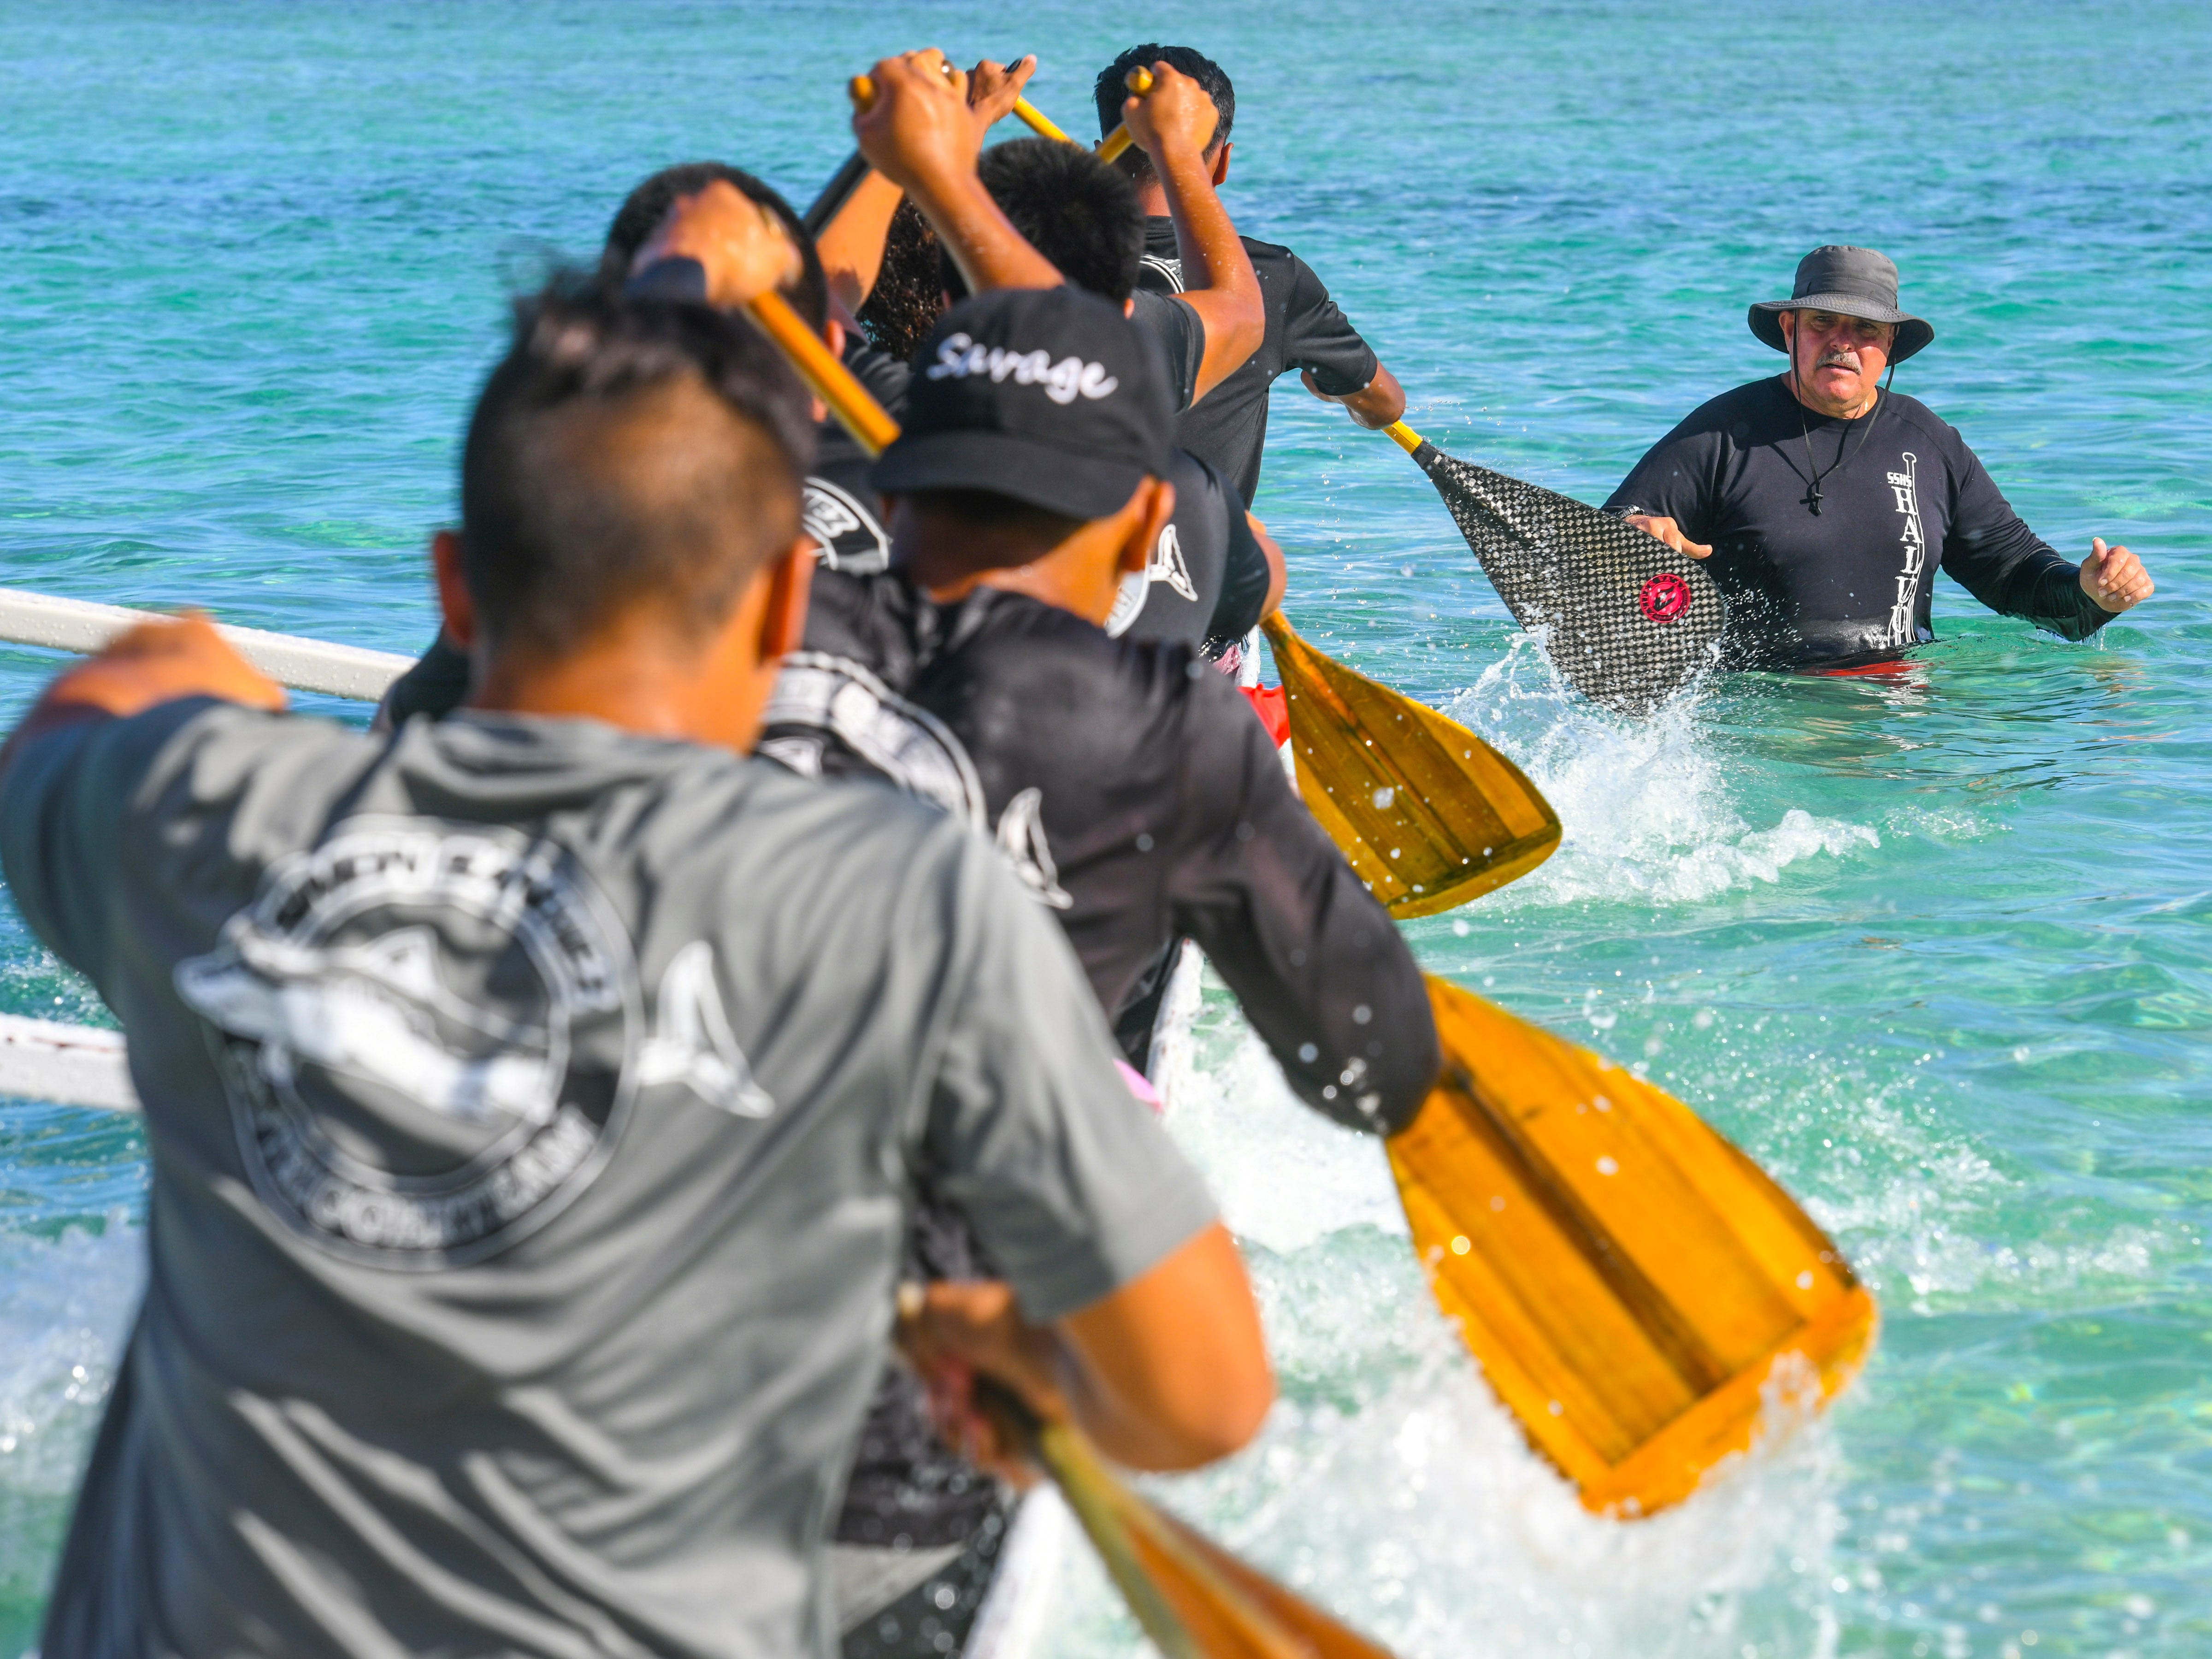 Simon Sanchez Shark's paddling coach Ron Ruiz clears from the bow of his team's canoe as they kick off from the starting line during a 1000m mixed manhoben preliminary race in IIAAG Paddling competition at Matapang Beach in Tumon on Saturday, May 11, 2019.